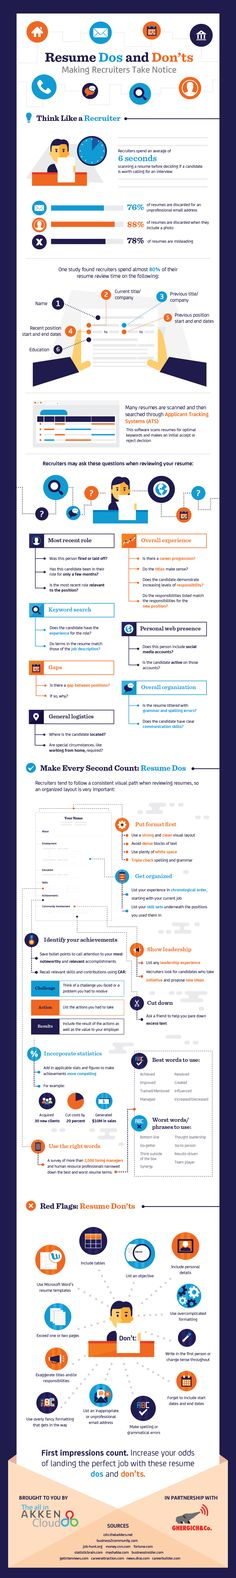 How Do Recruiters Really Read Your Resume? [Infographic] | The Savvy Intern by YouTern